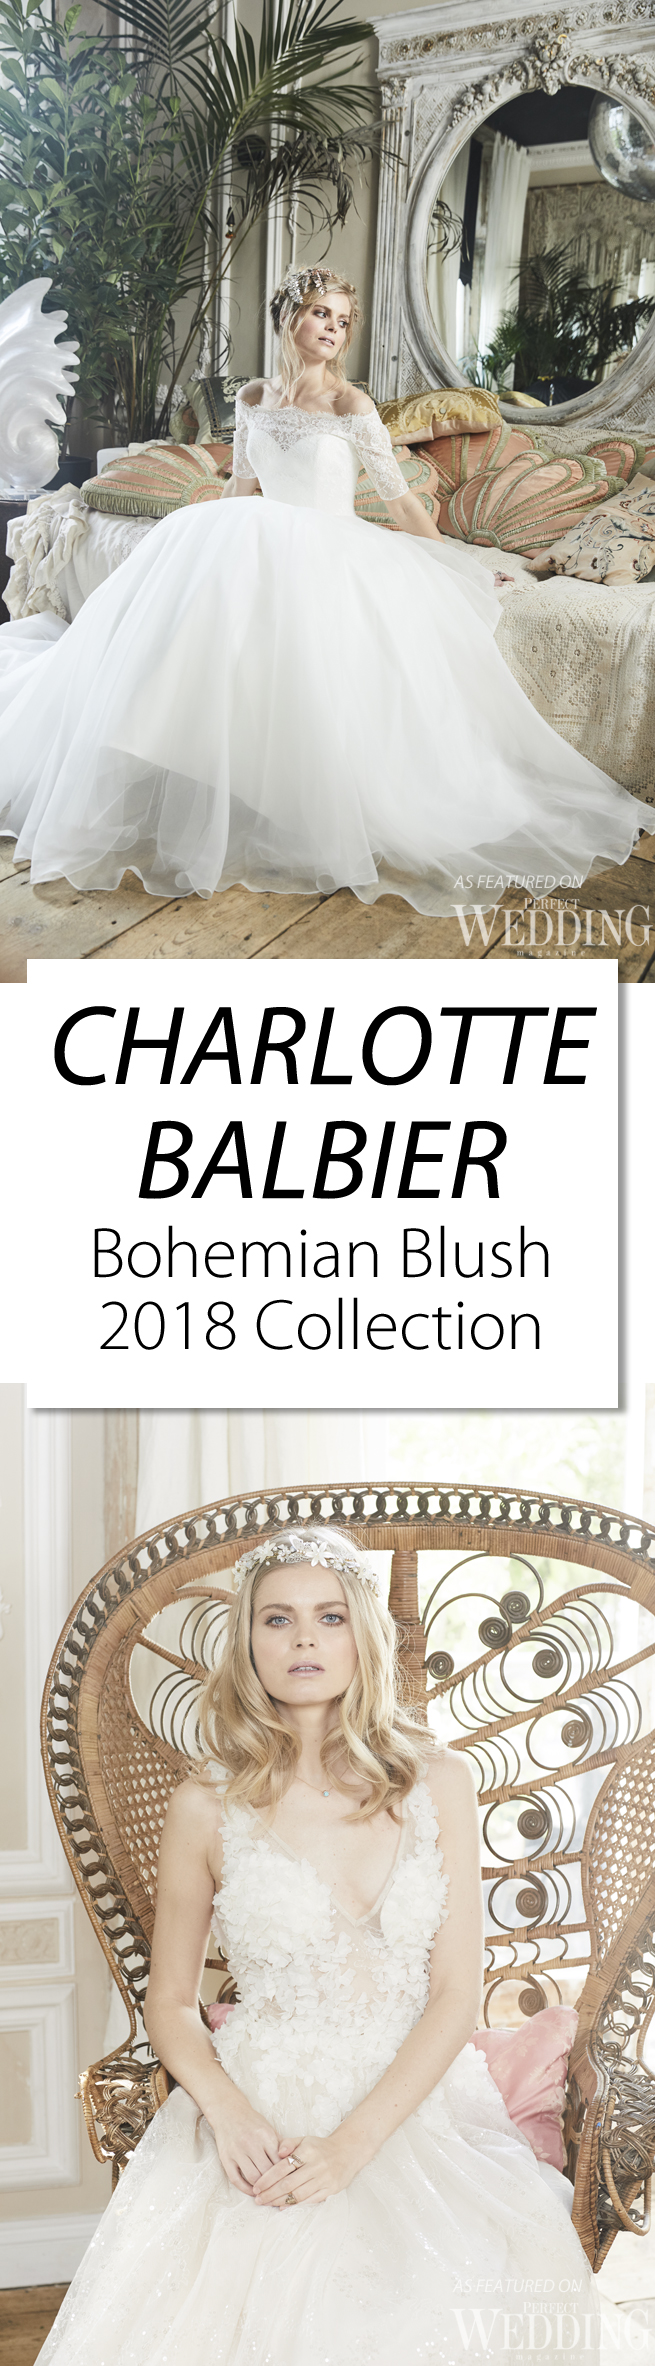 Charlotte Balbier, Bohemian Blush, Charlotte Balbier Bohemian Blush 2018 collection, Wedding Gowns, UK Bride, Bridal Gowns, UK Designer, Perfect Wedding Magazine, Perfect Wedding Blog